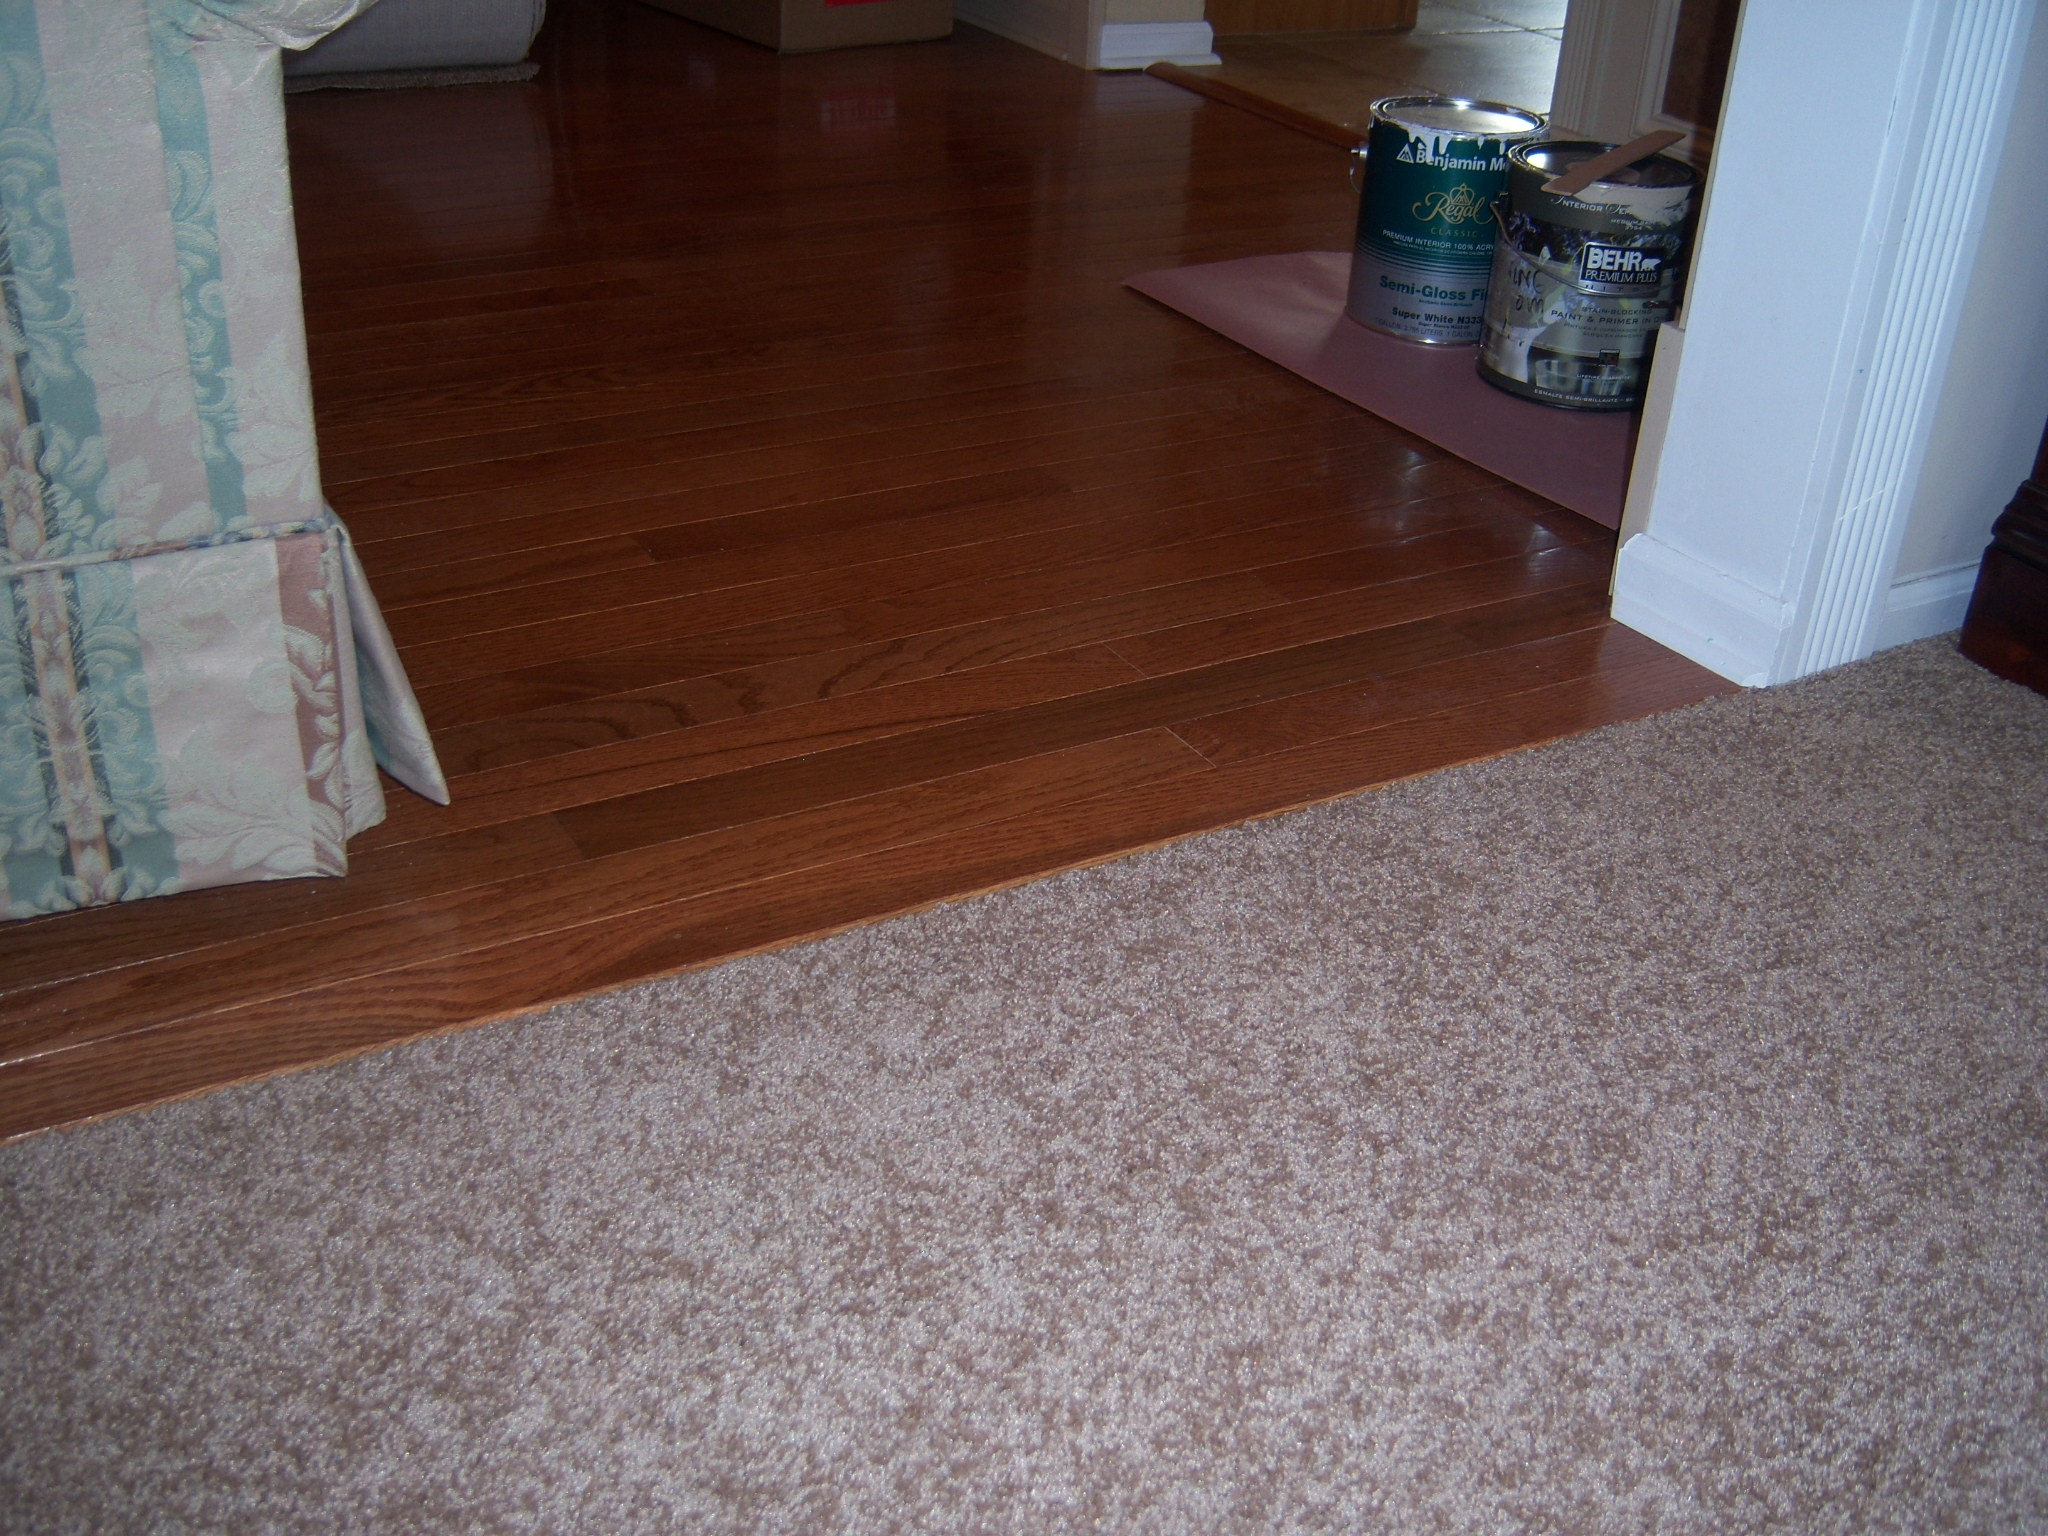 Floating Wood Floor To Carpet Transition